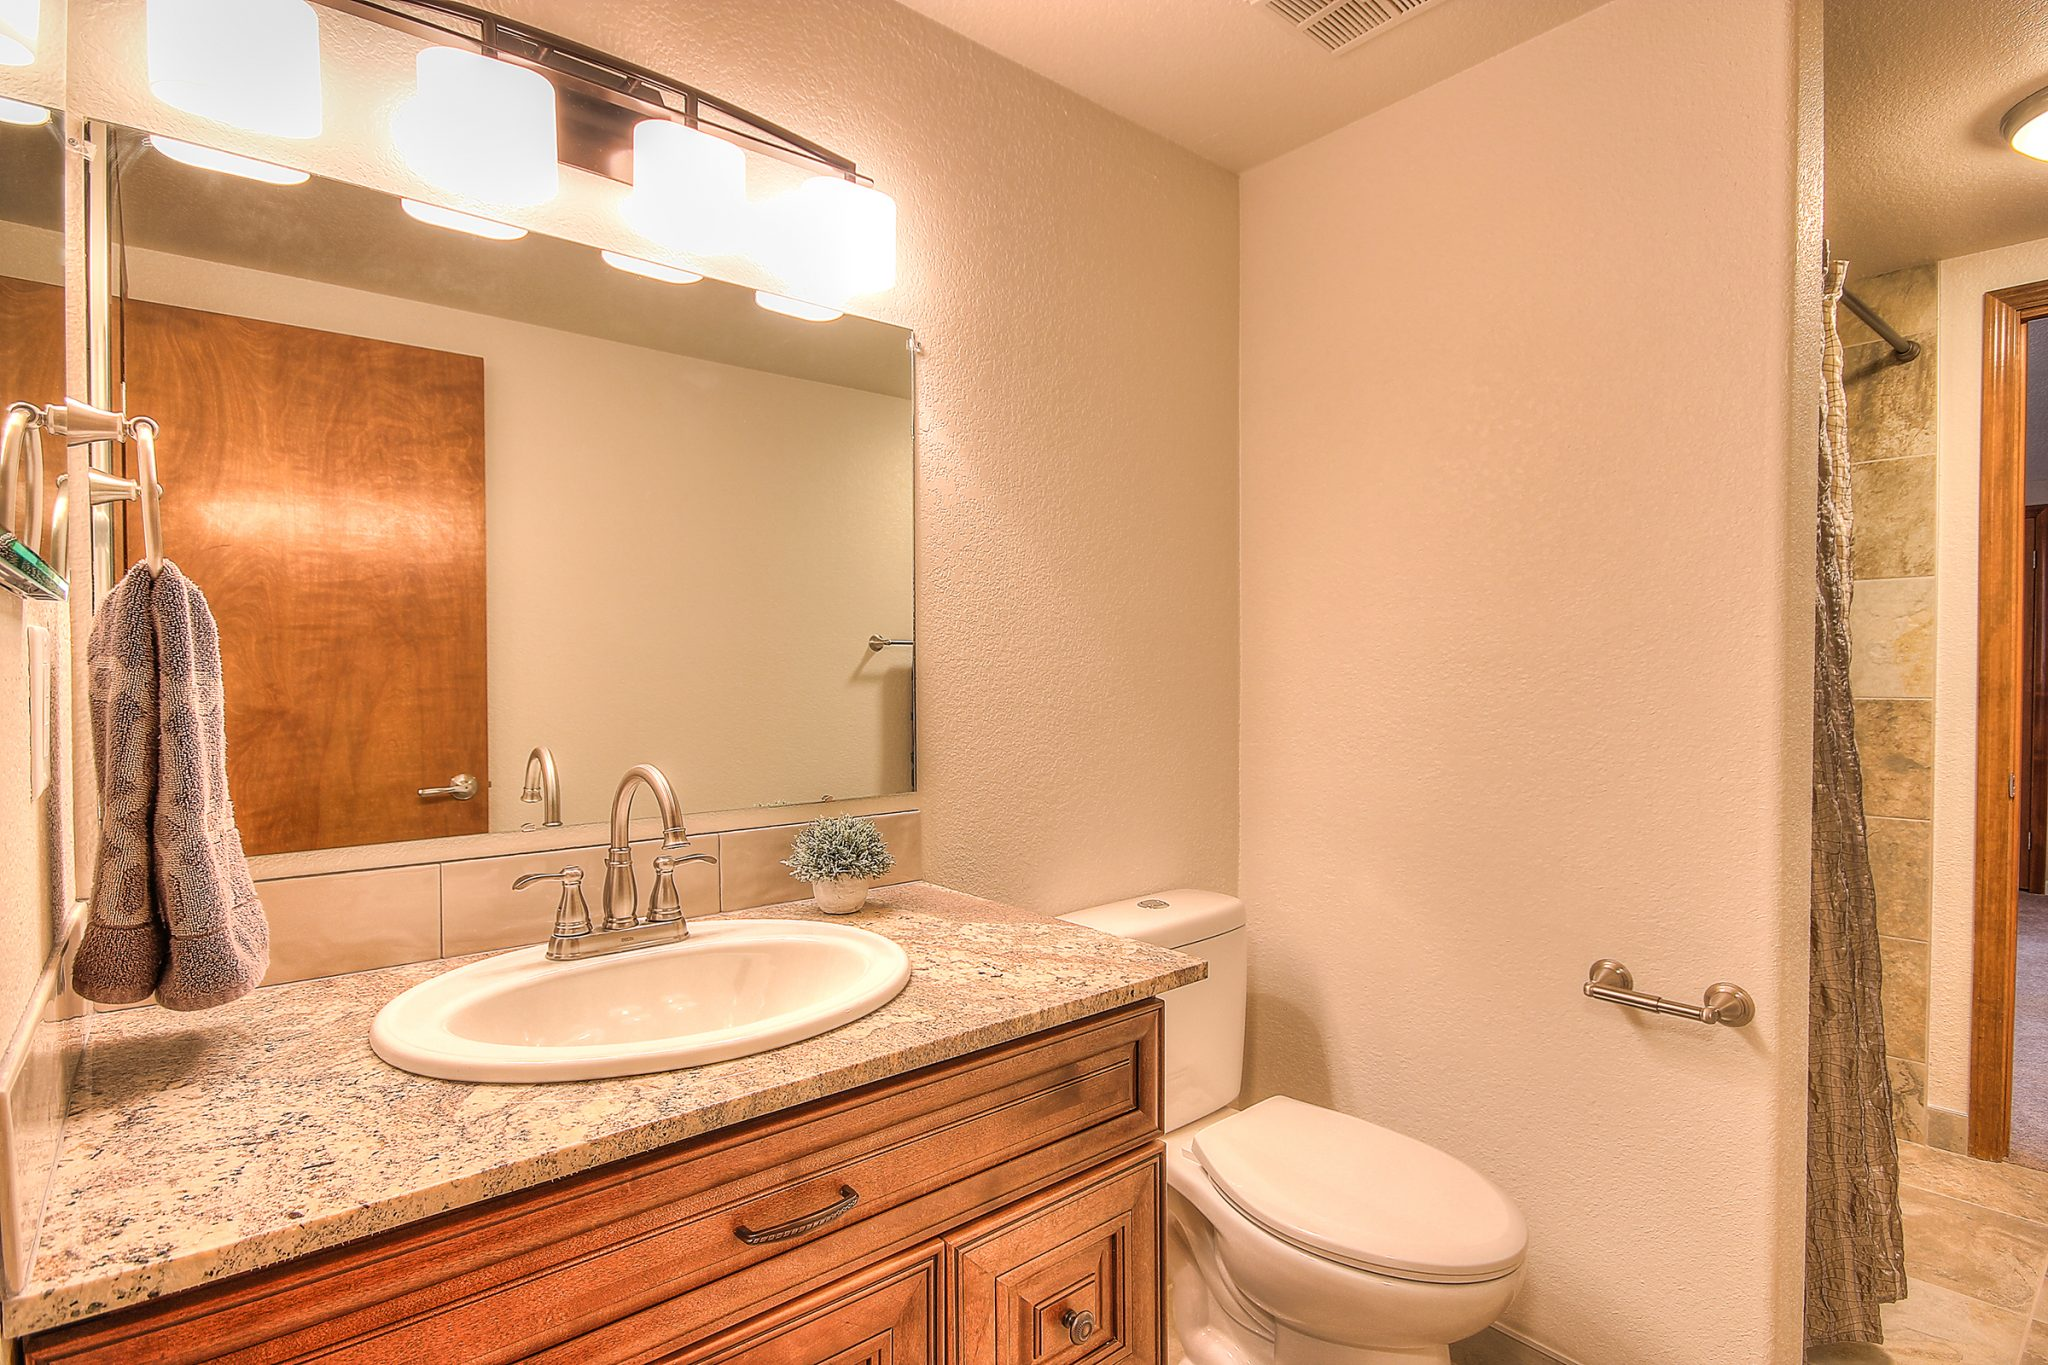 Interior shot of a newly remodeled bathroom with granite countertops and tan tiling